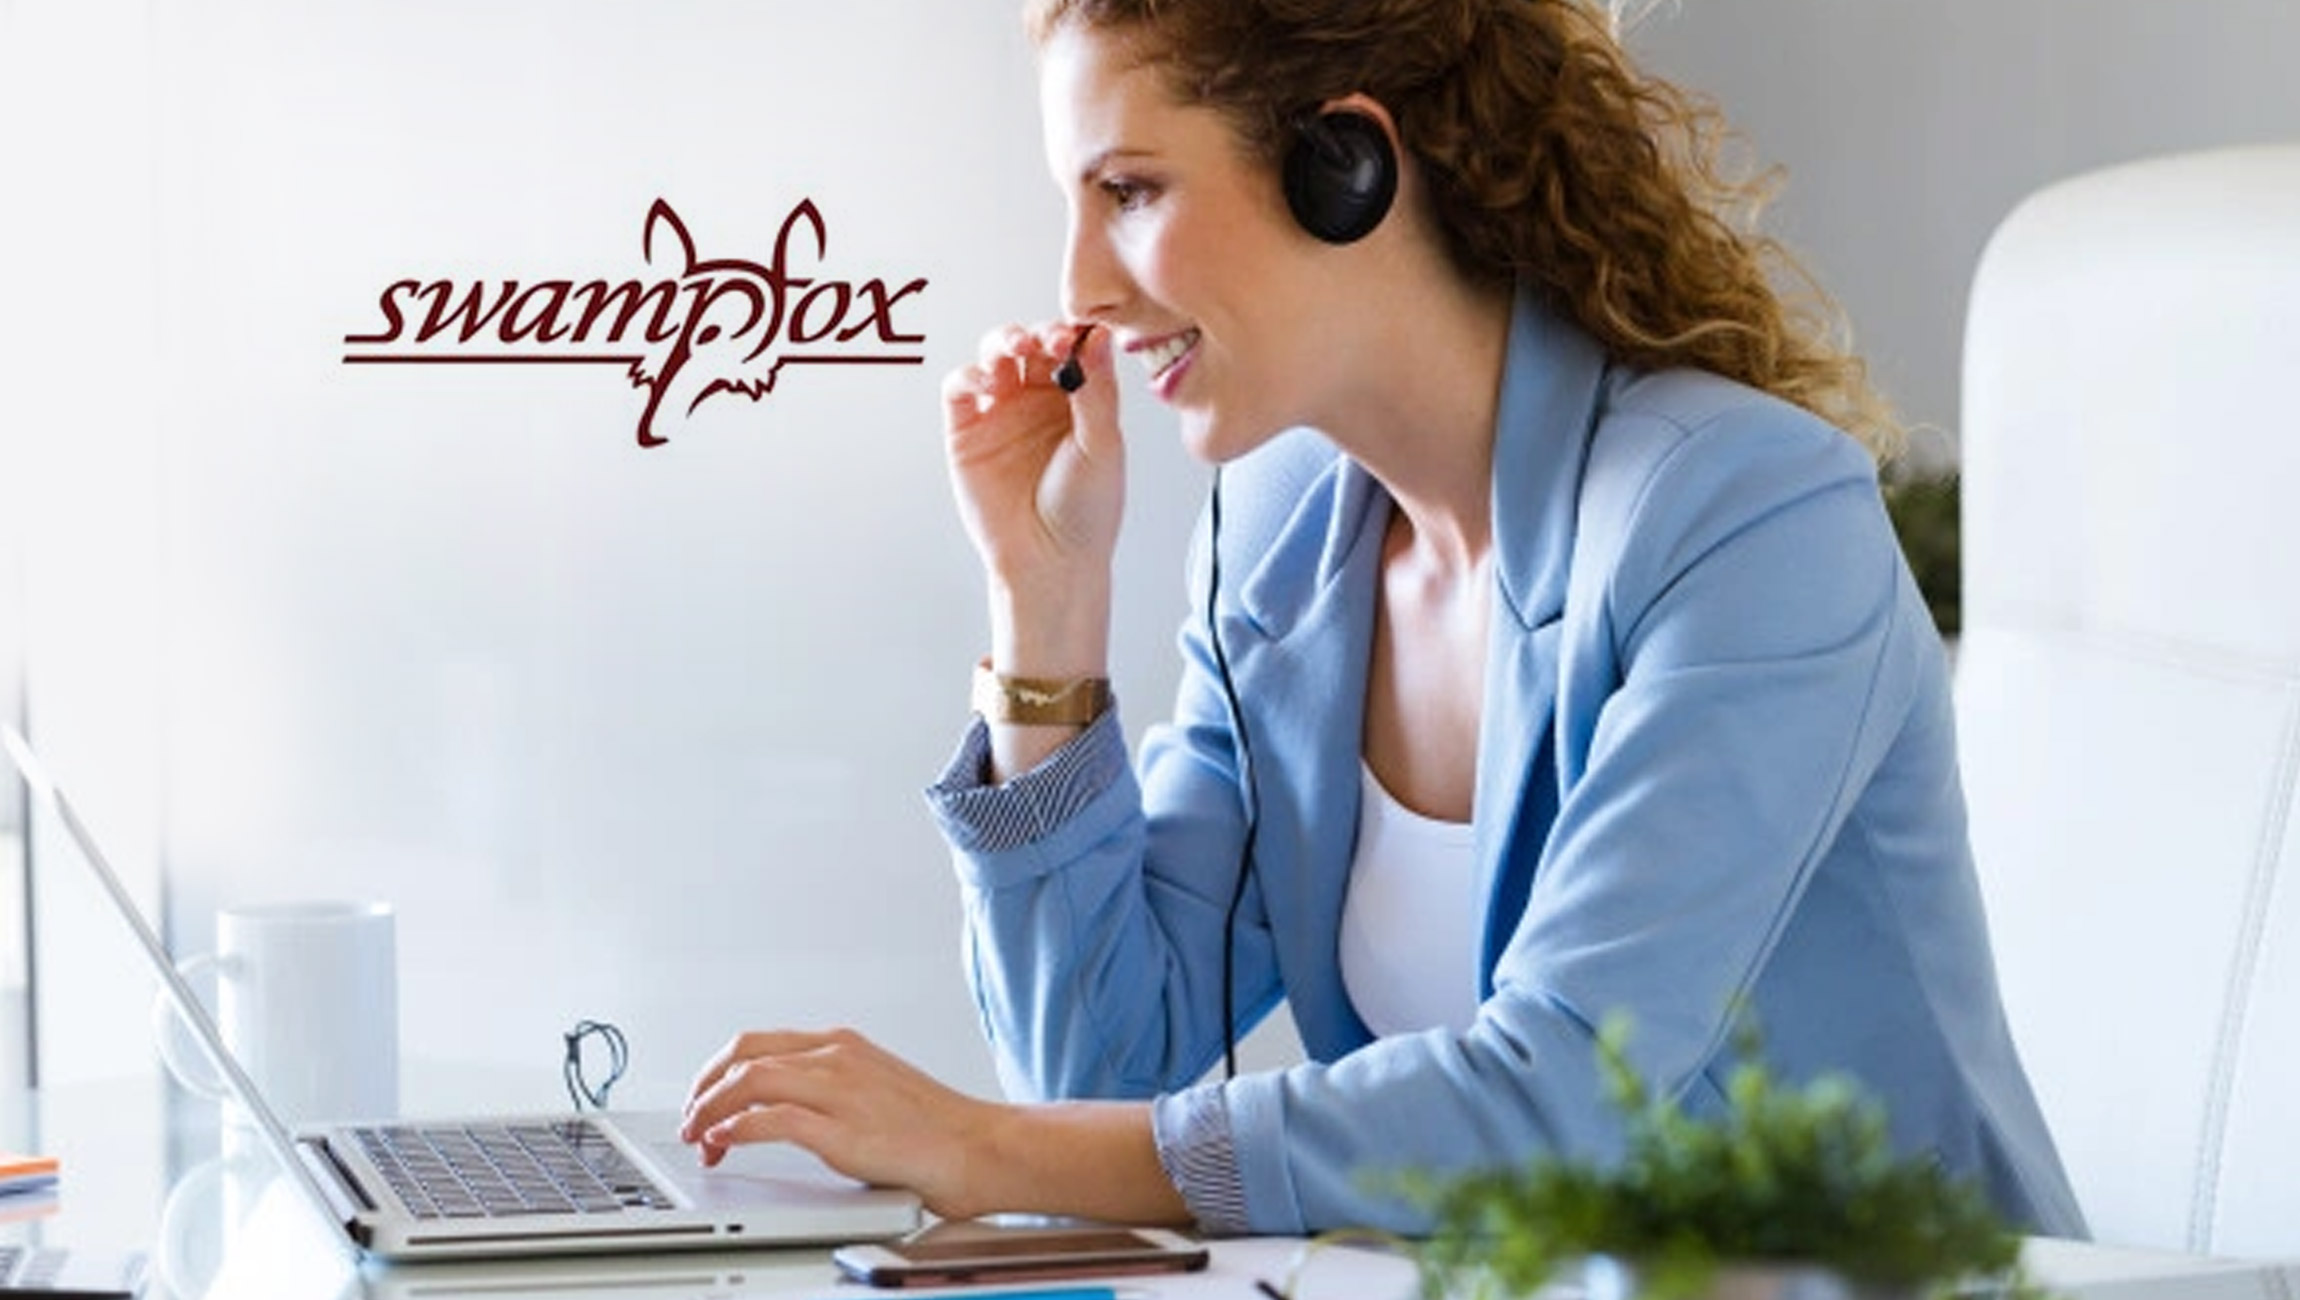 Swampfox Technologies Drives Growth Through Callback for Large Contact Centers